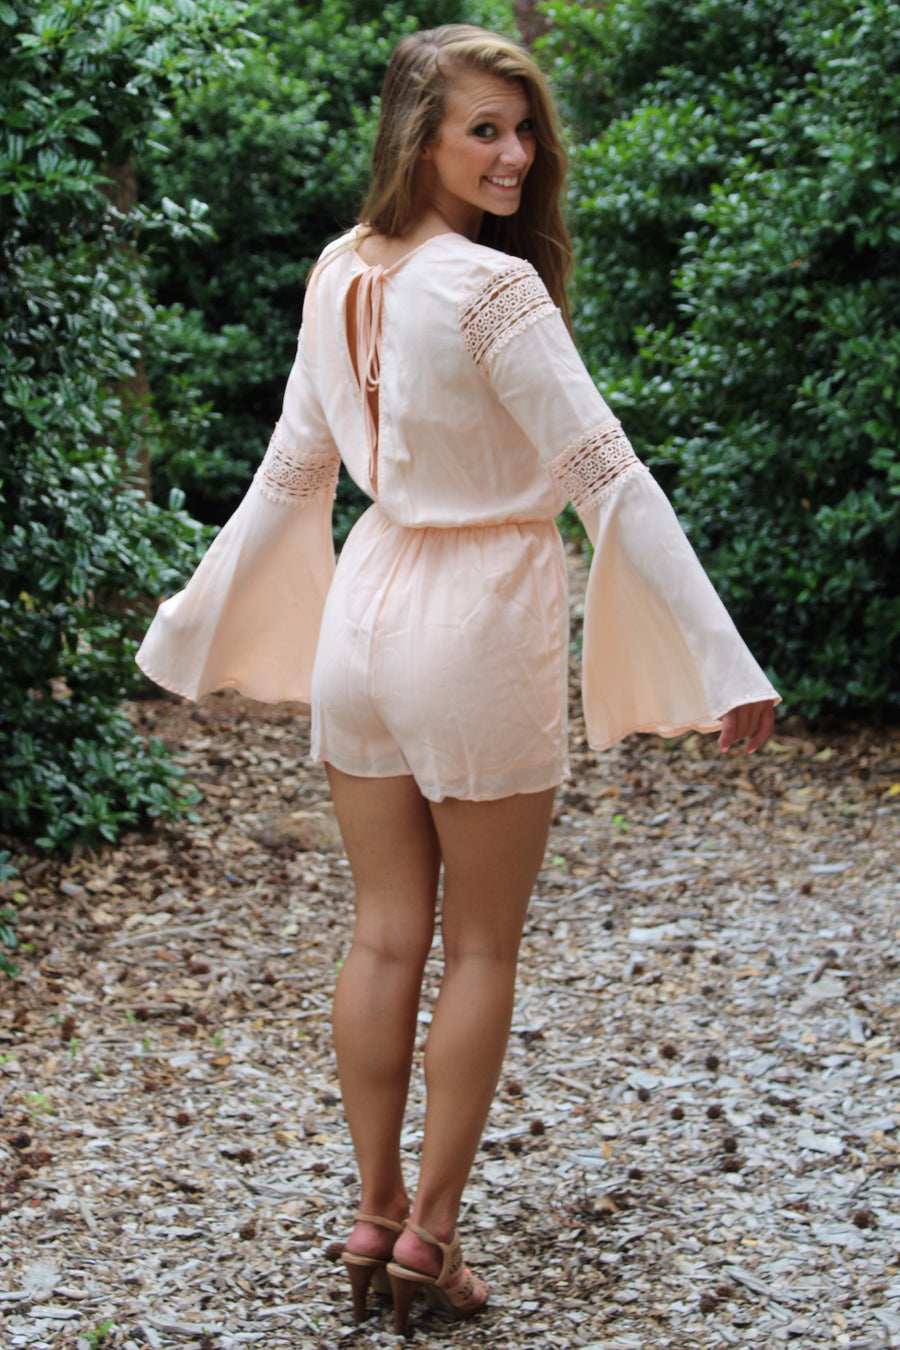 b2e9548f377 Long Sleeve Open-Back Romper With Lace Detail